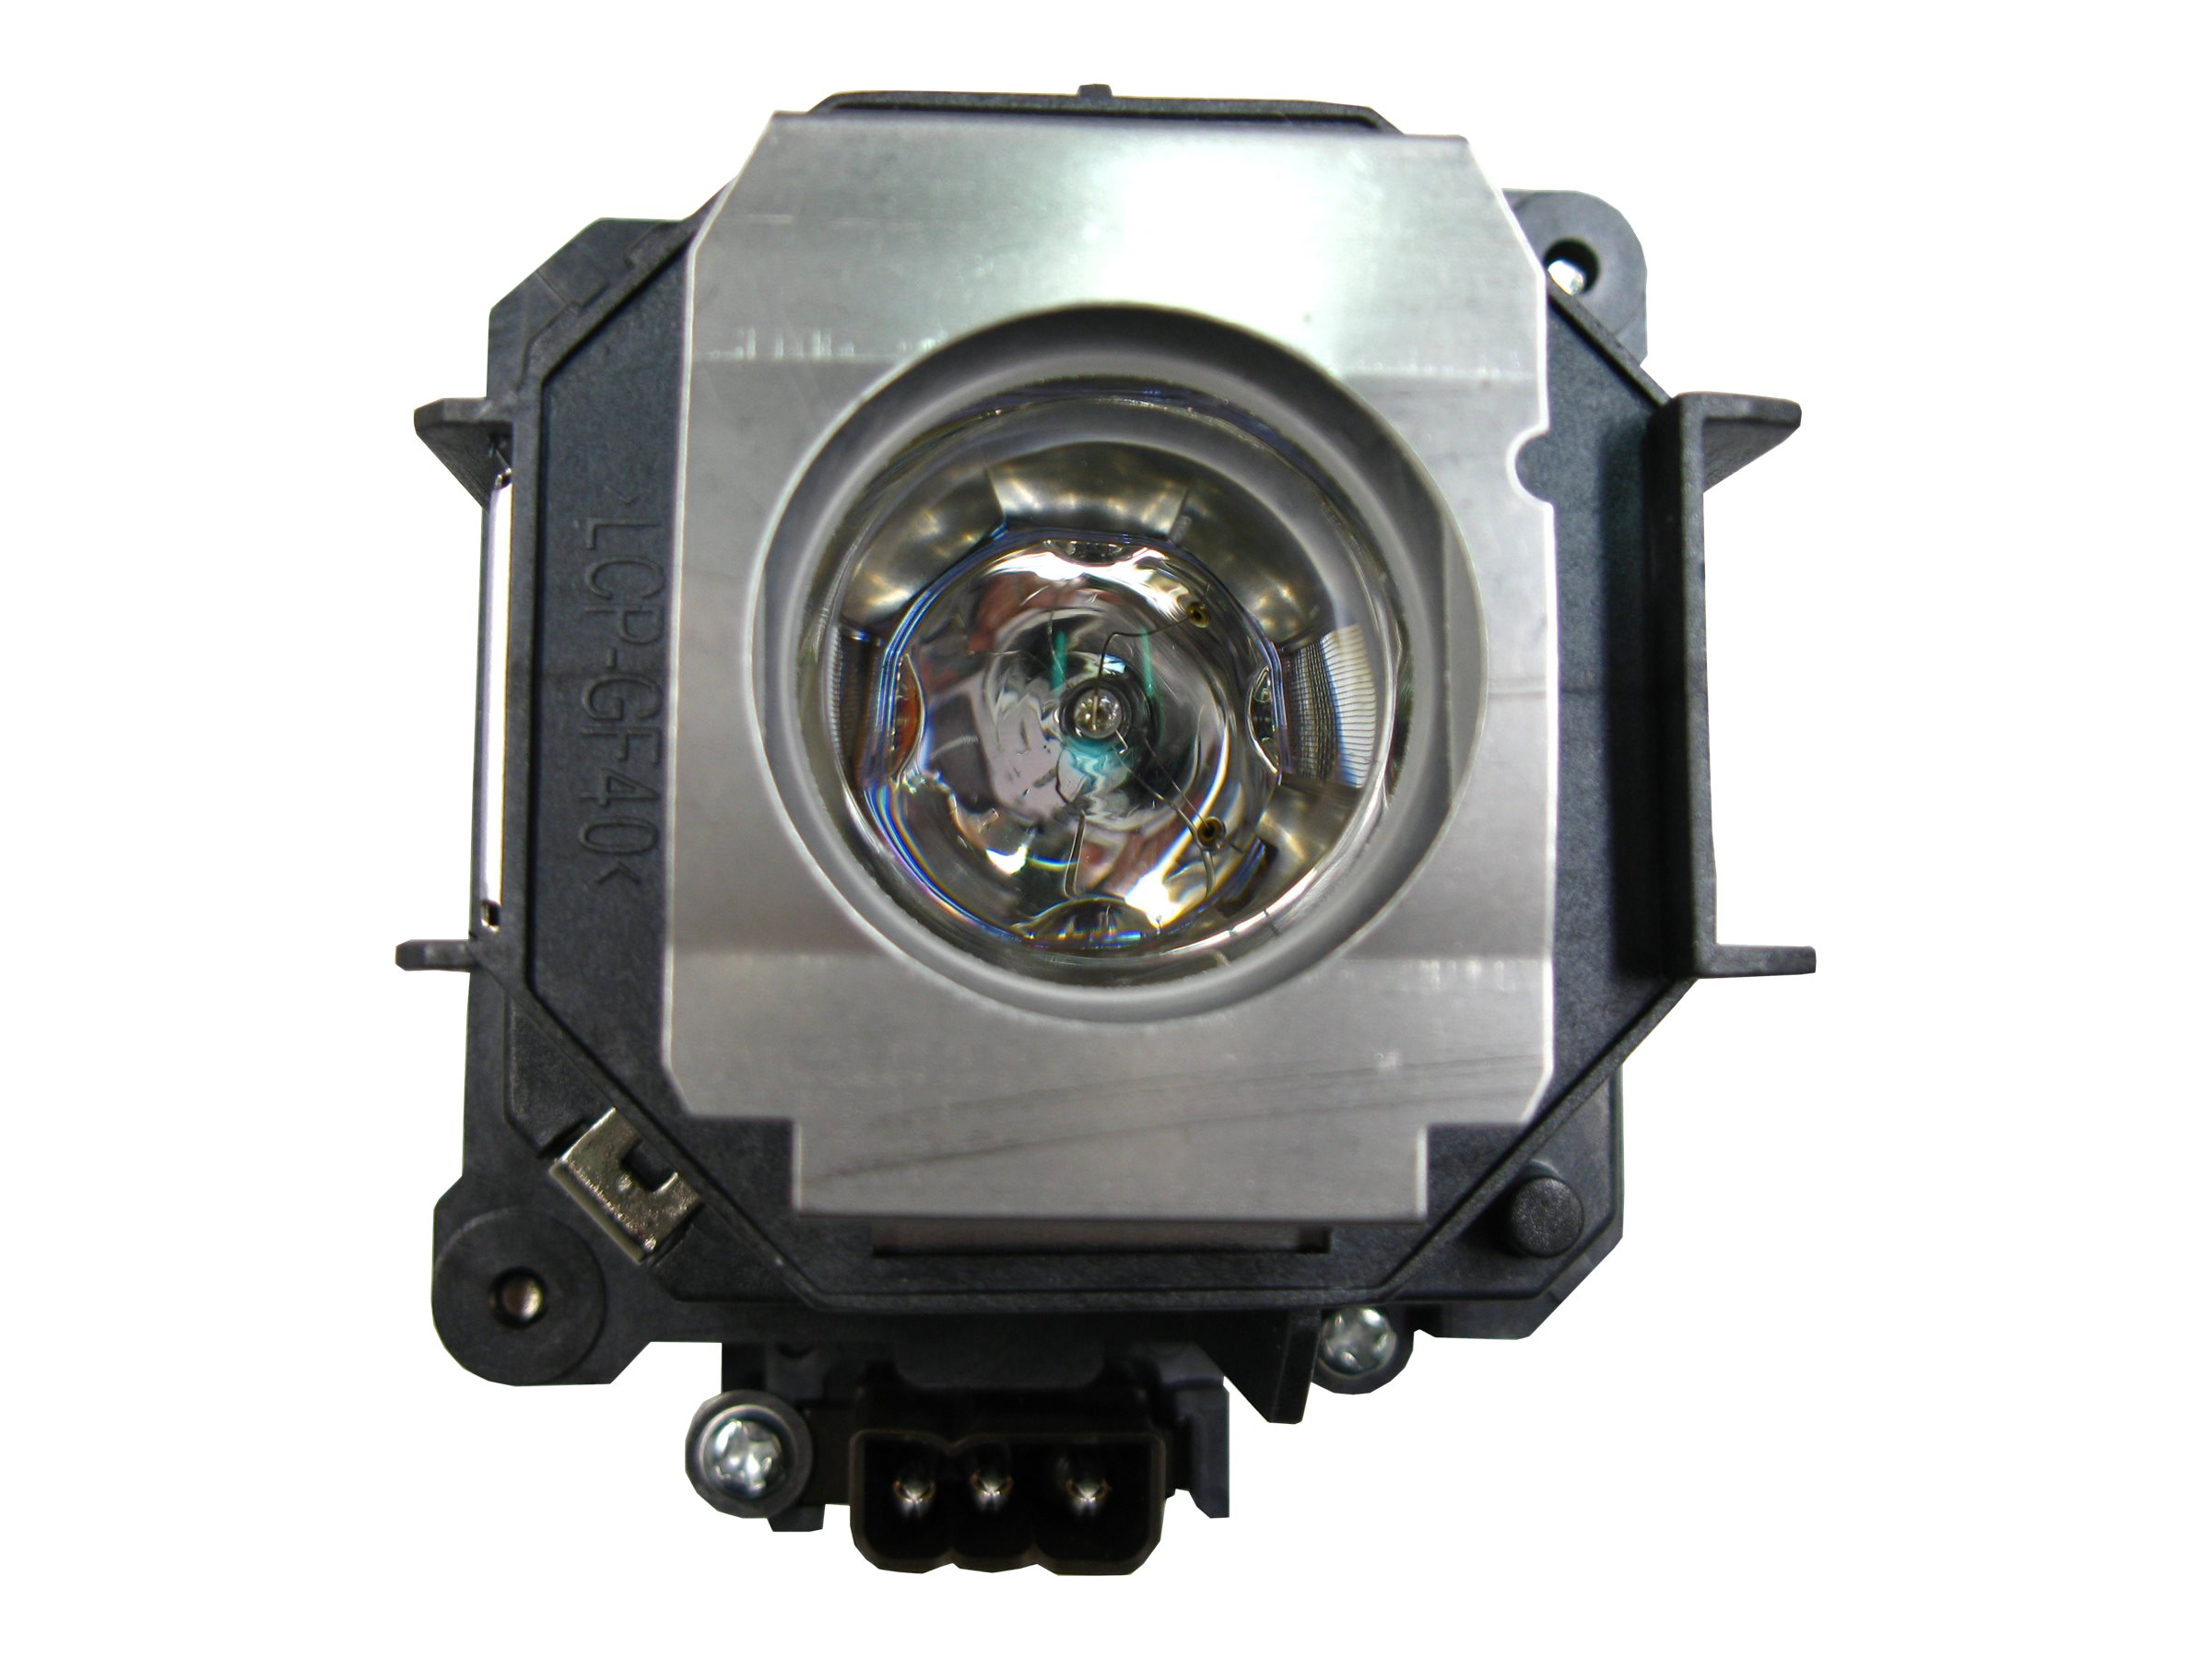 V7 Replacement Lamp for EB-G5200, EB-G5300, EB-G5350, VPL1945-1N